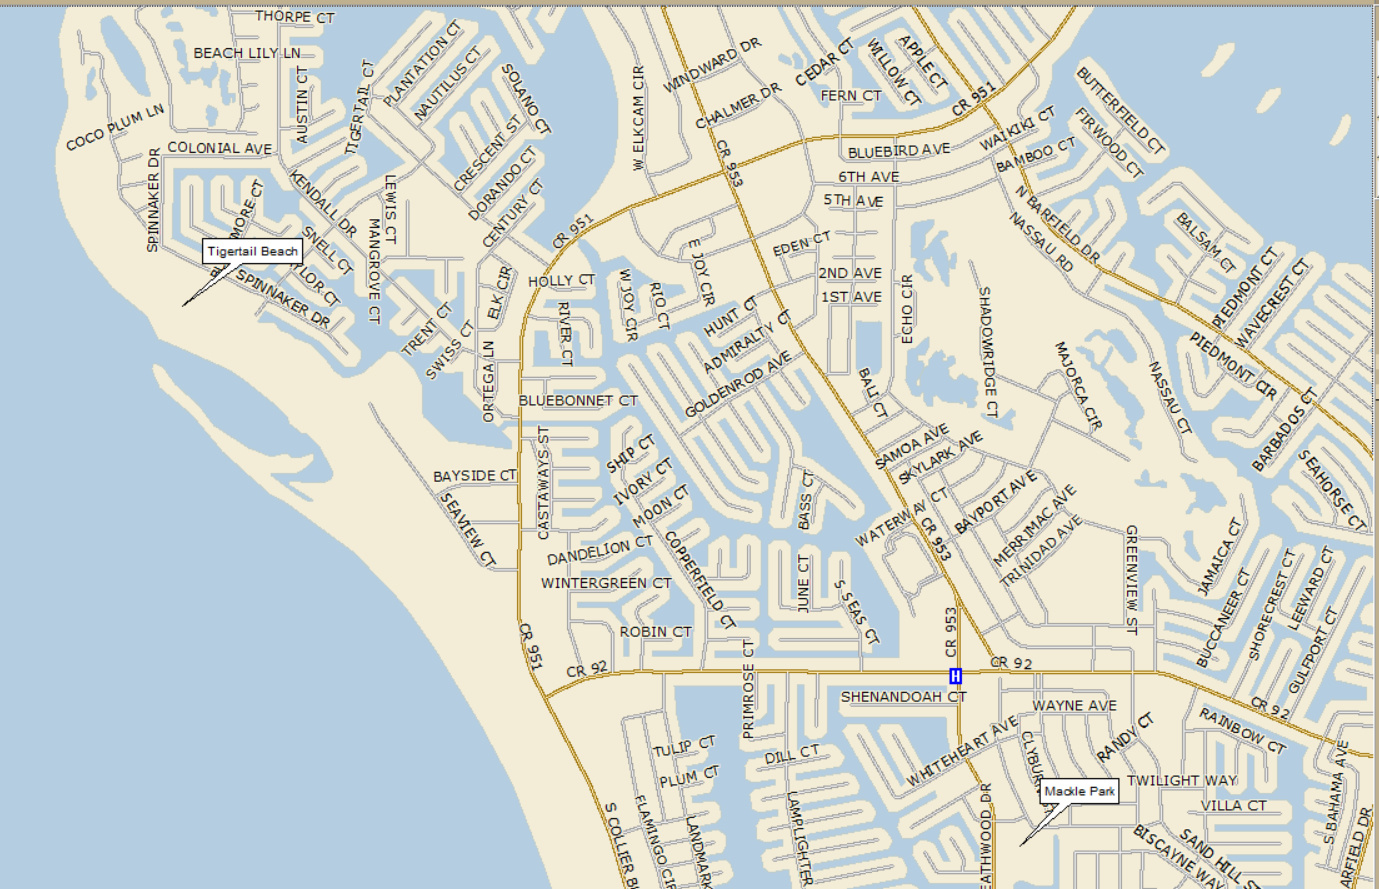 Directions From Cape Coral To Marco Island